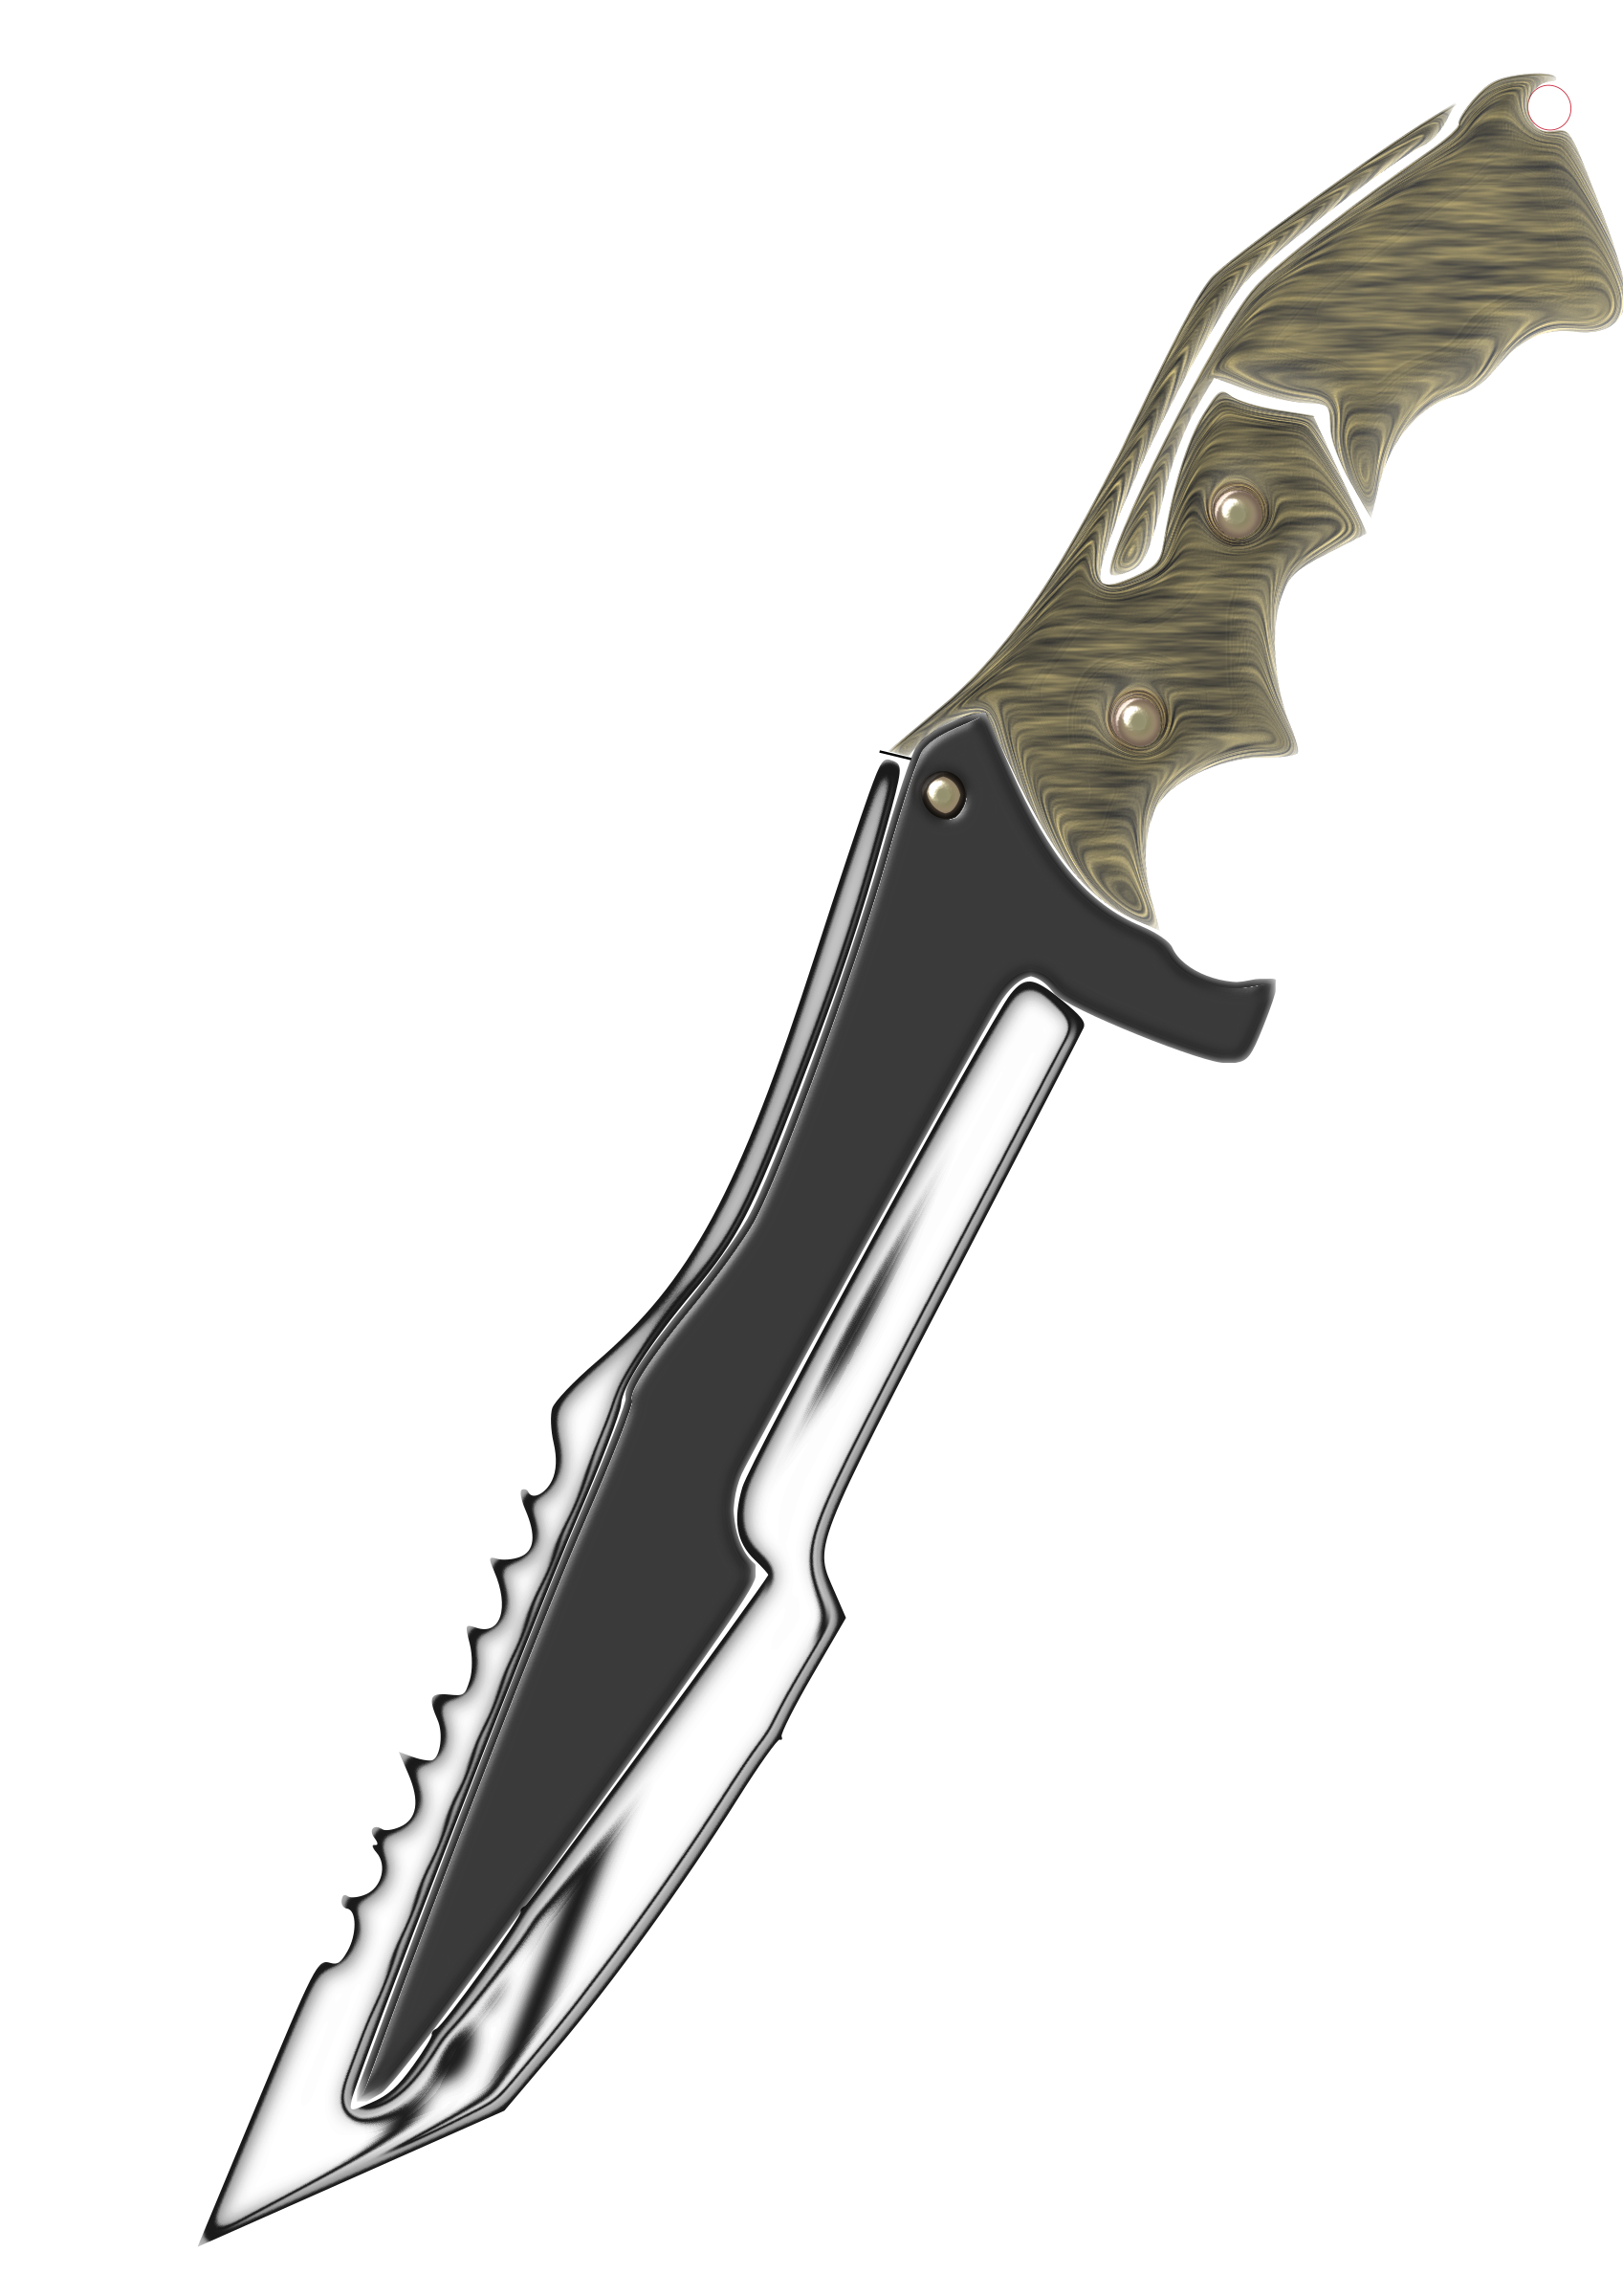 Hunter Knife by Misael.Vasconcelos